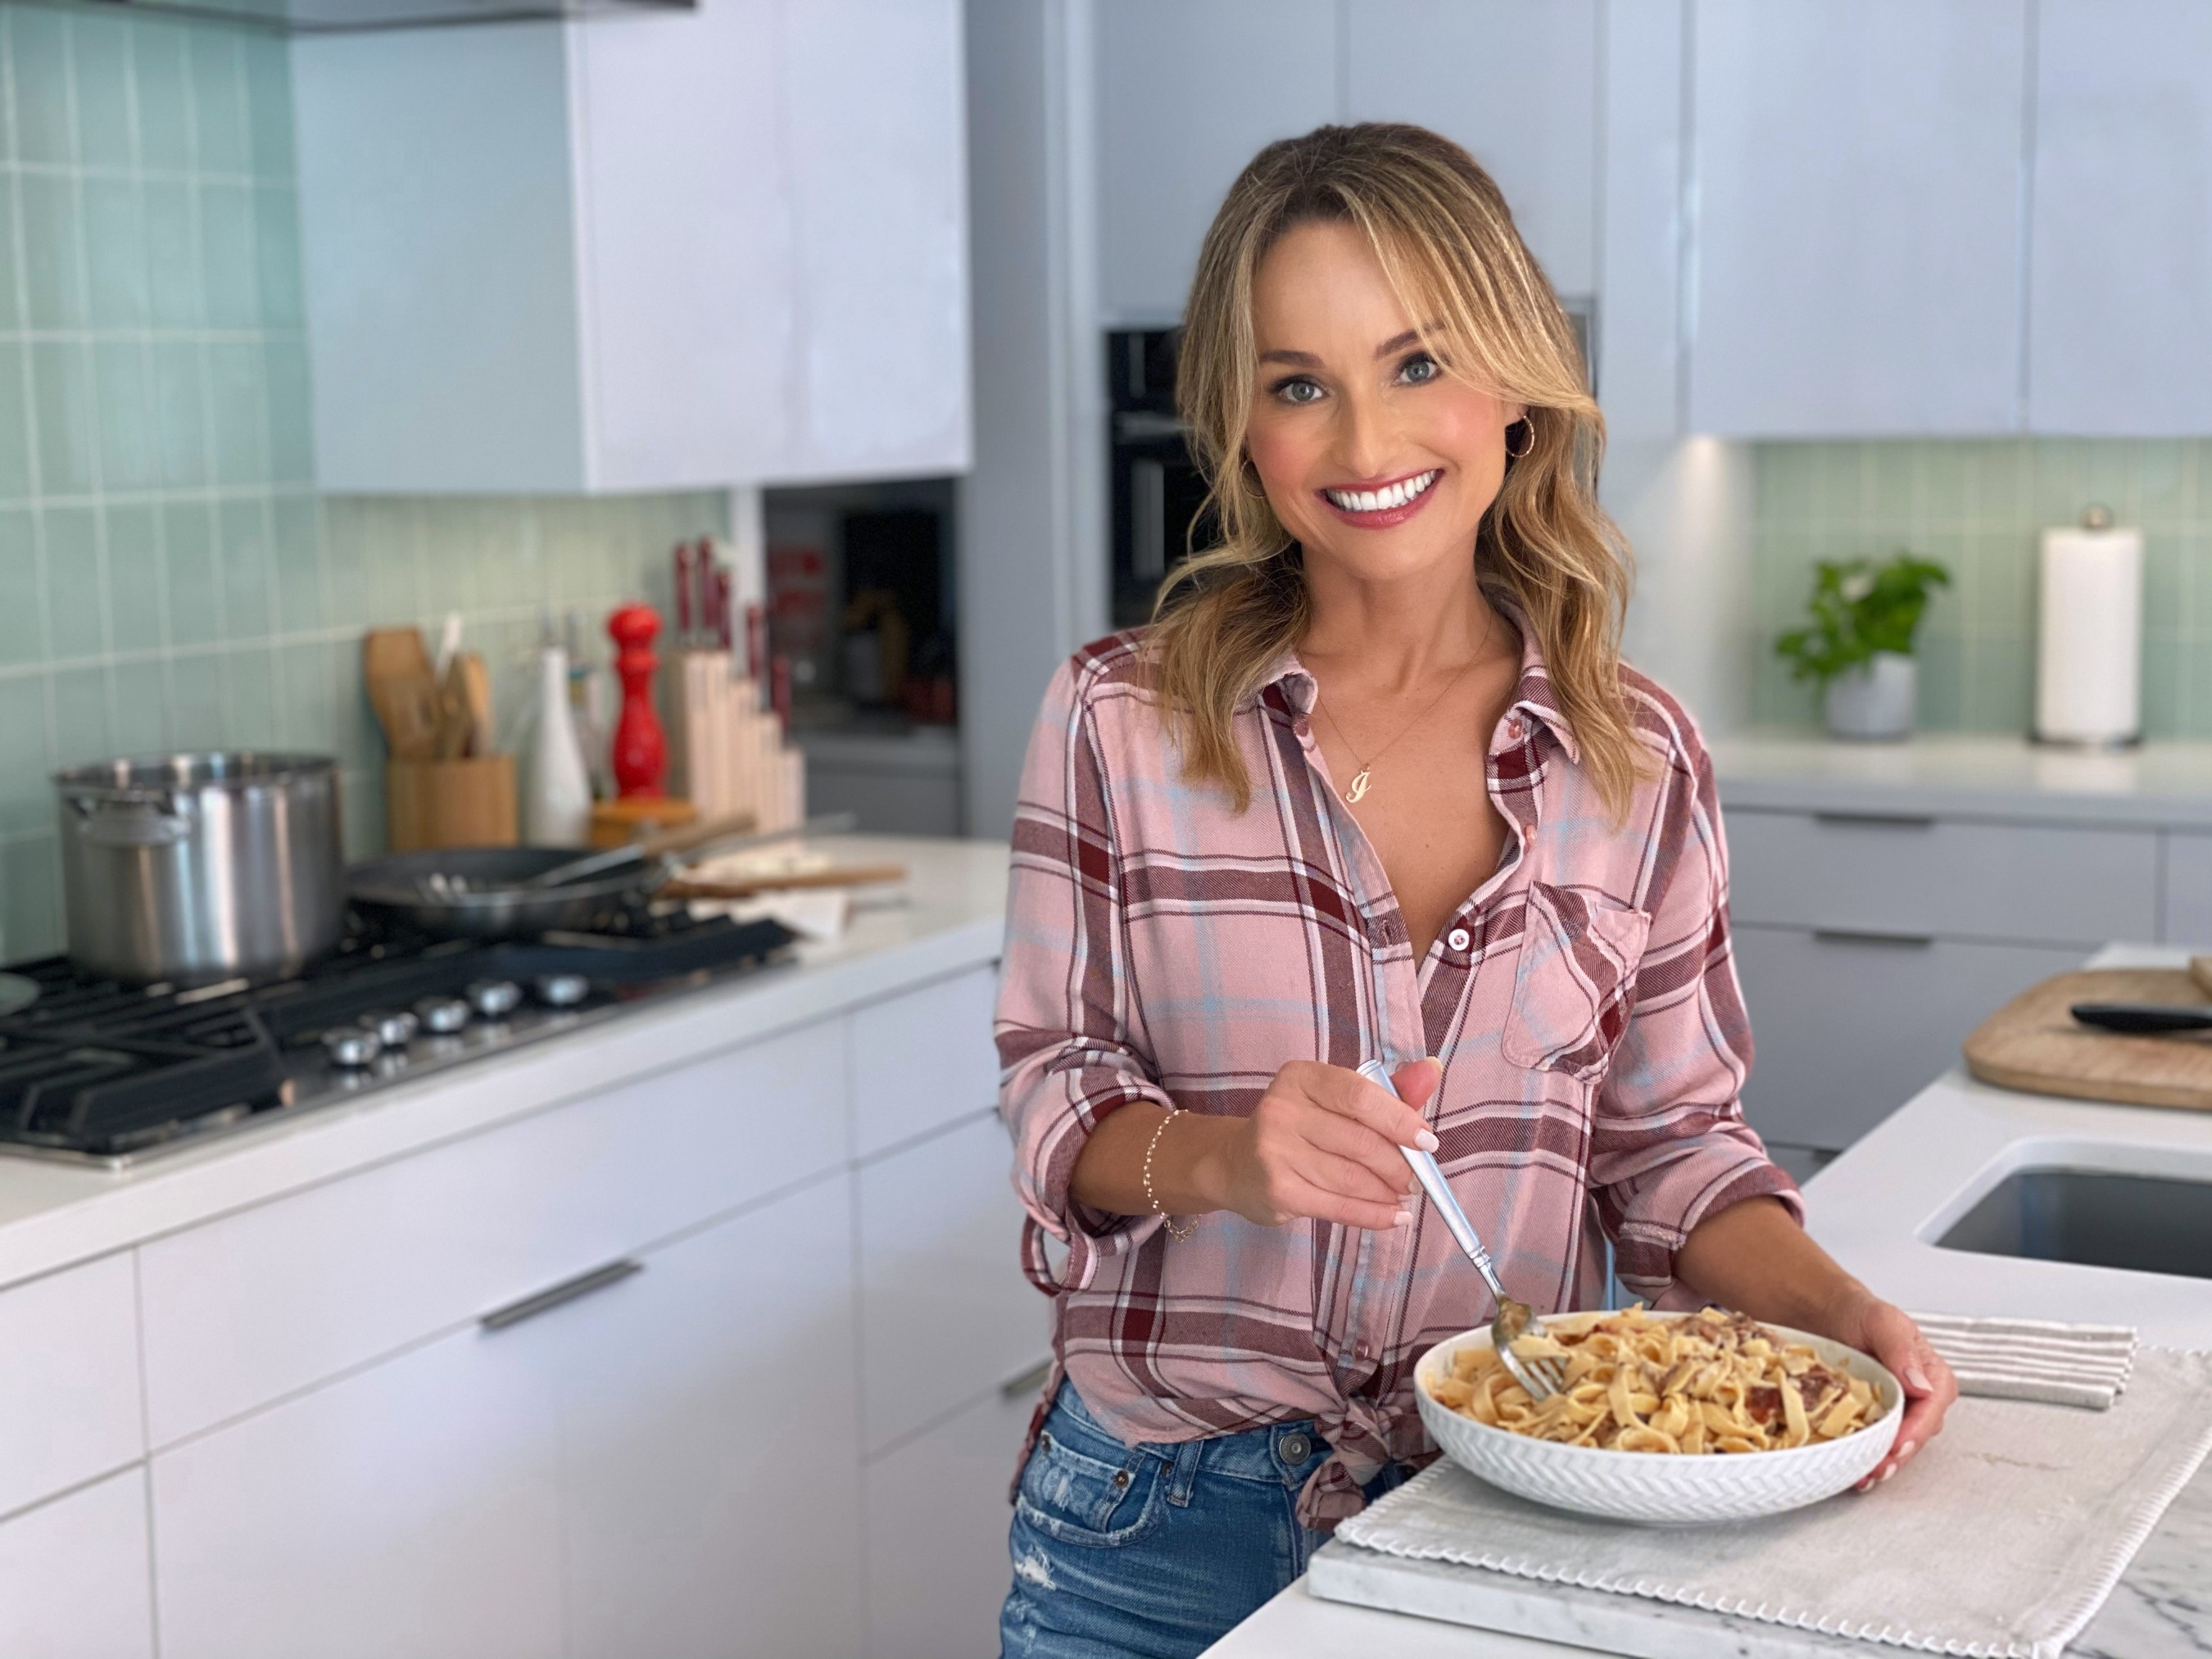 Celebrity Chef Giada De Laurentiis teams up with Marshalls to launch the Share WOW, Get WOW campaign, inviting consumers to share their amazing finds on Instagram for a chance to be WOW'd by Marshalls.